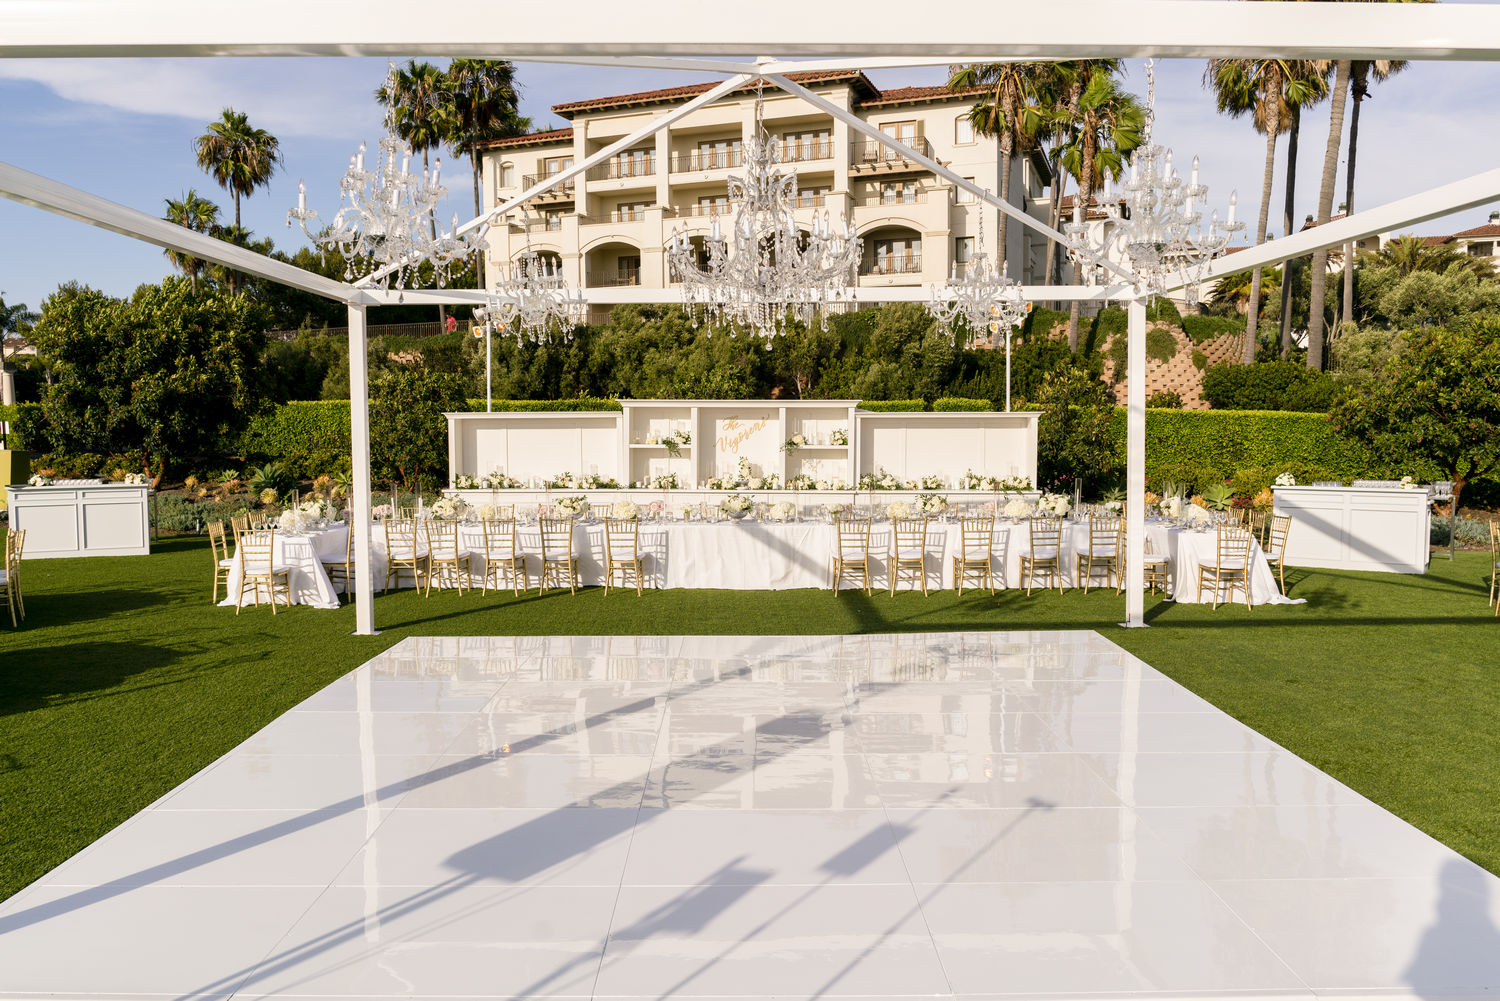 wedding-monarch-beach-resort-jeanne-spencer-192.jpg